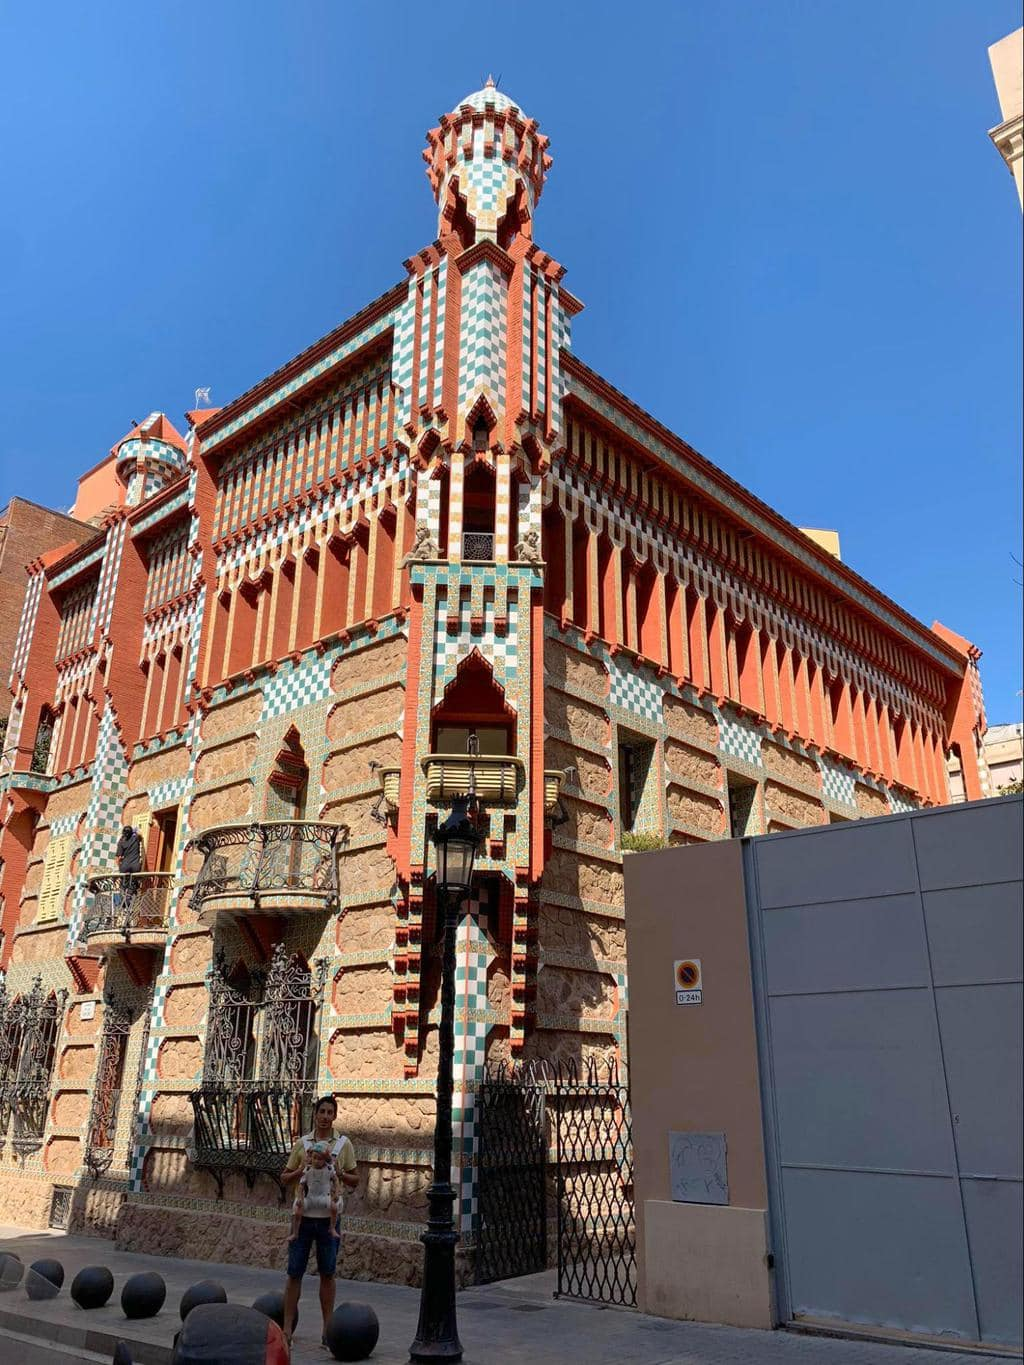 balcony key dragon age Epic And Fabulous The Best Things To Do In Barcelona Once